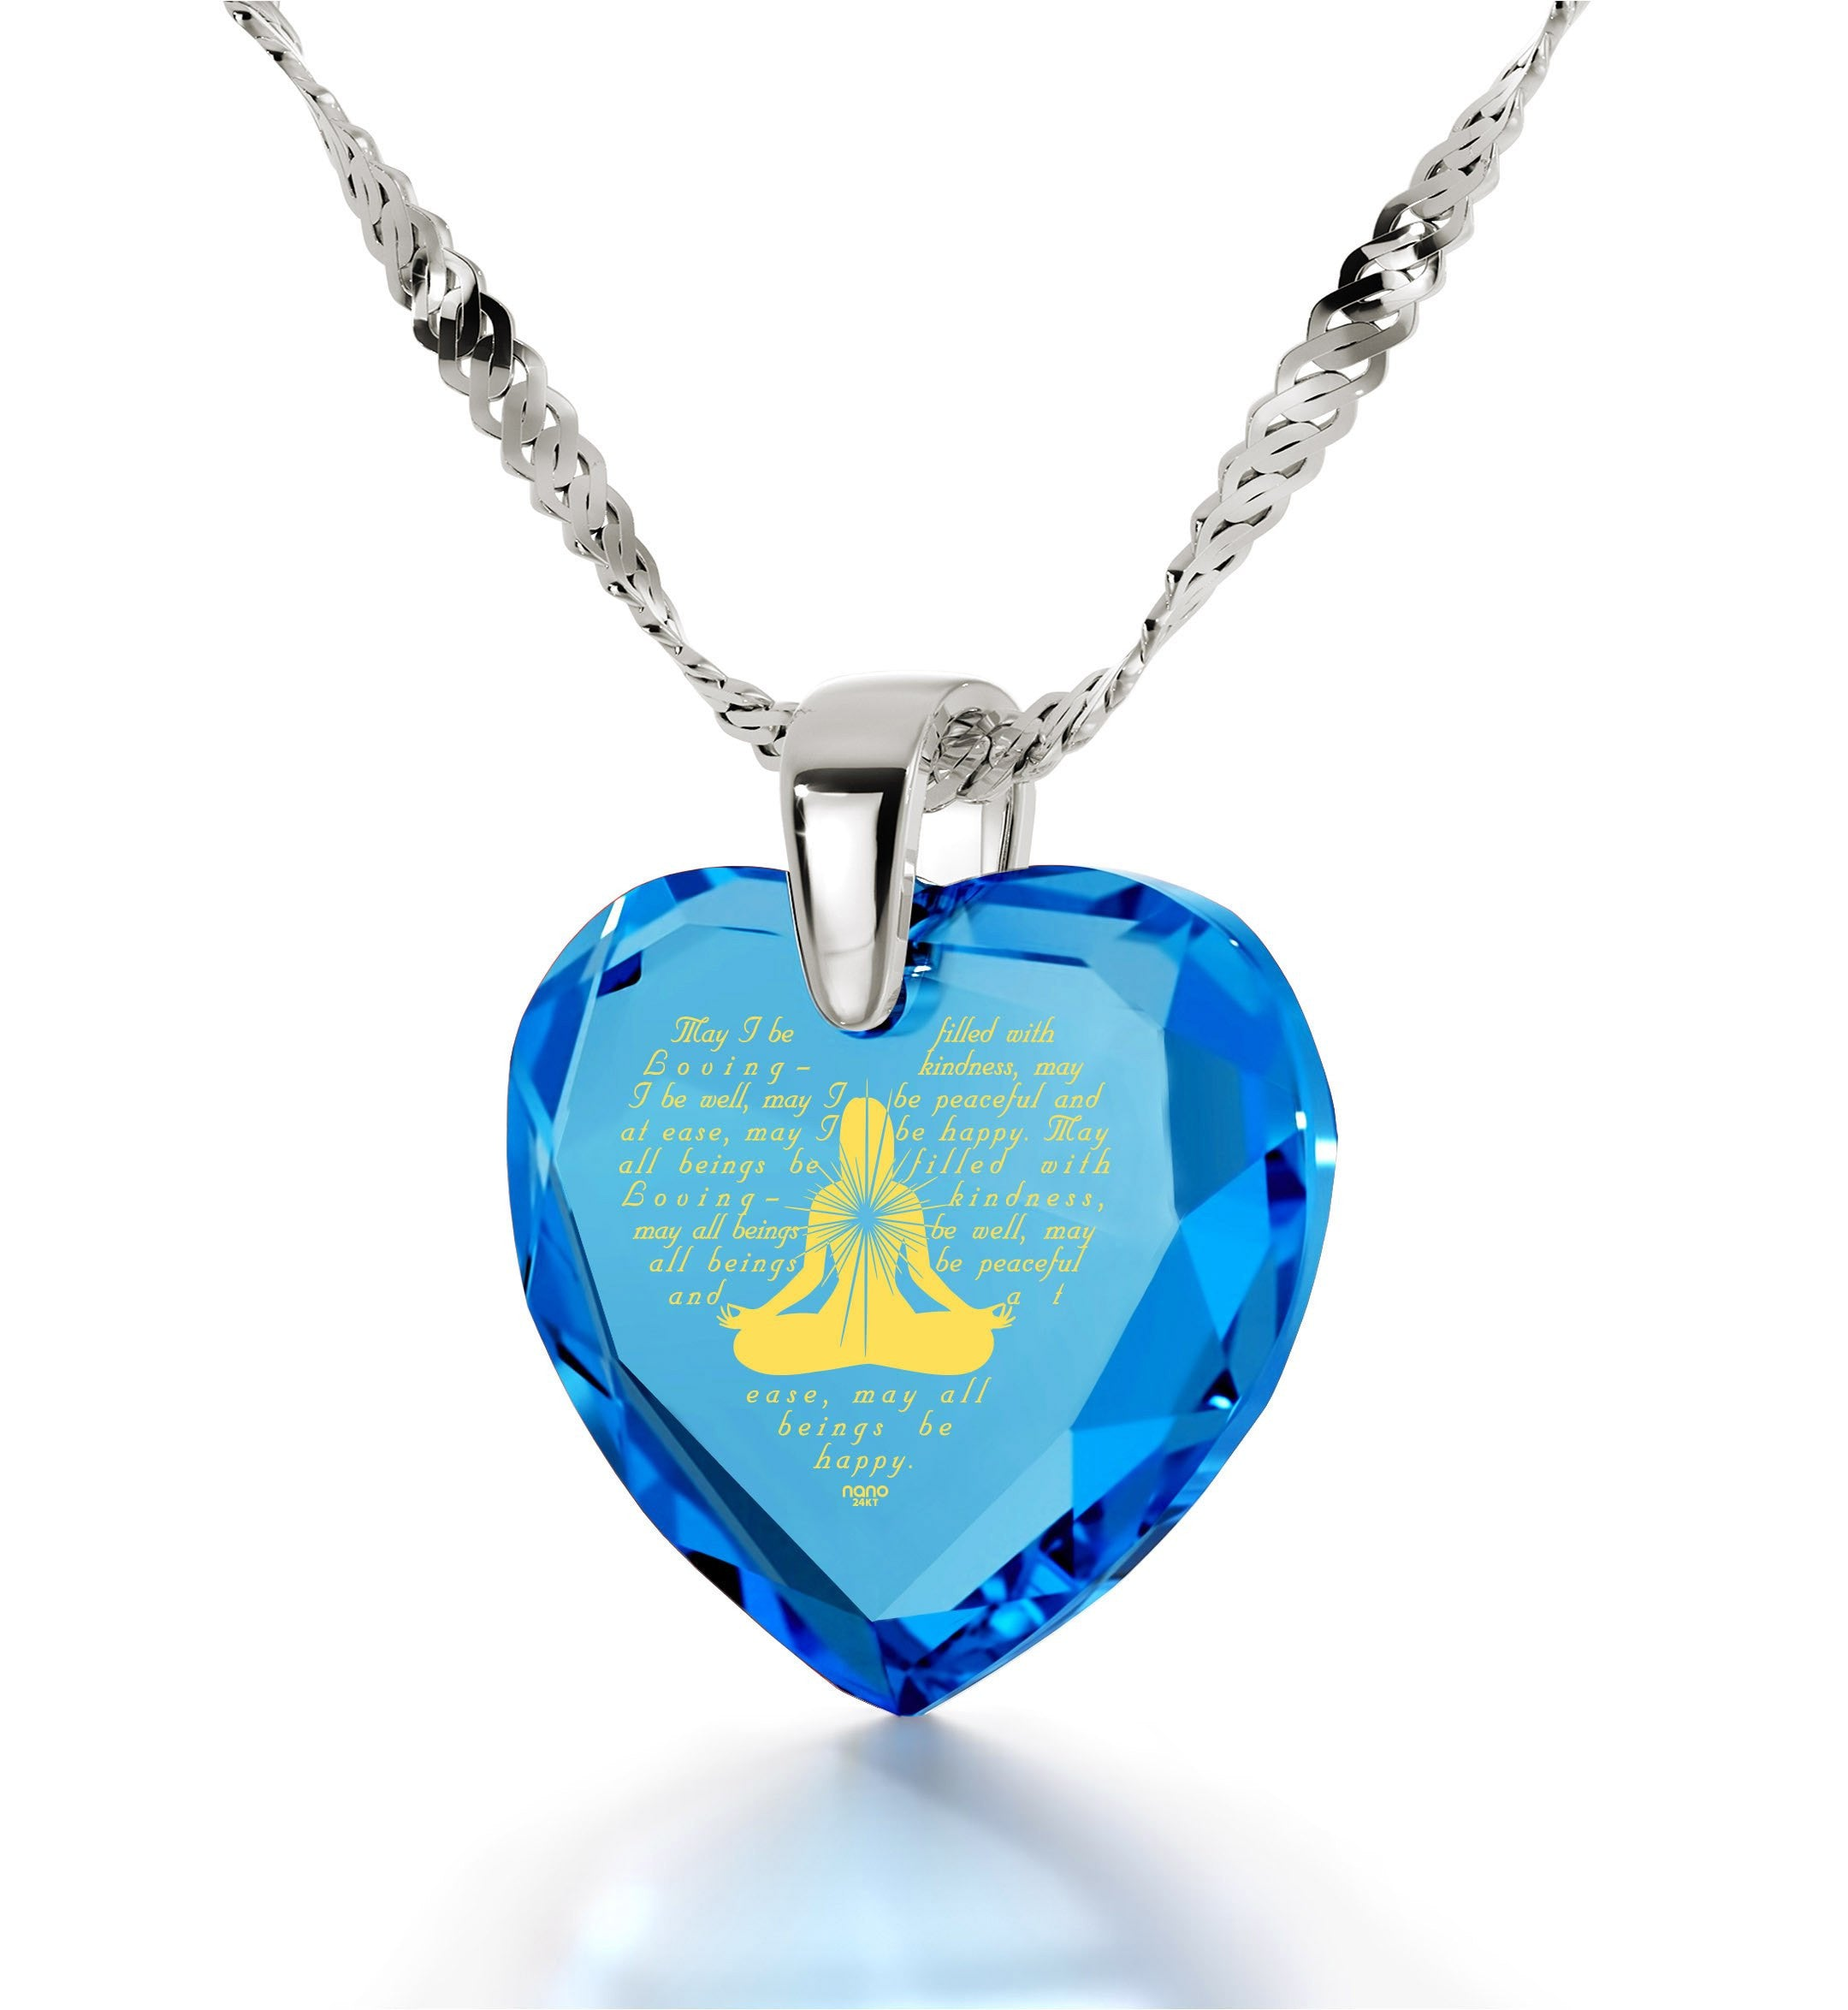 Metta Woman Engraved in 24k, Buddhist Store with Blue Topaz Jewelry, Meditation Necklace, Nano Jewelry